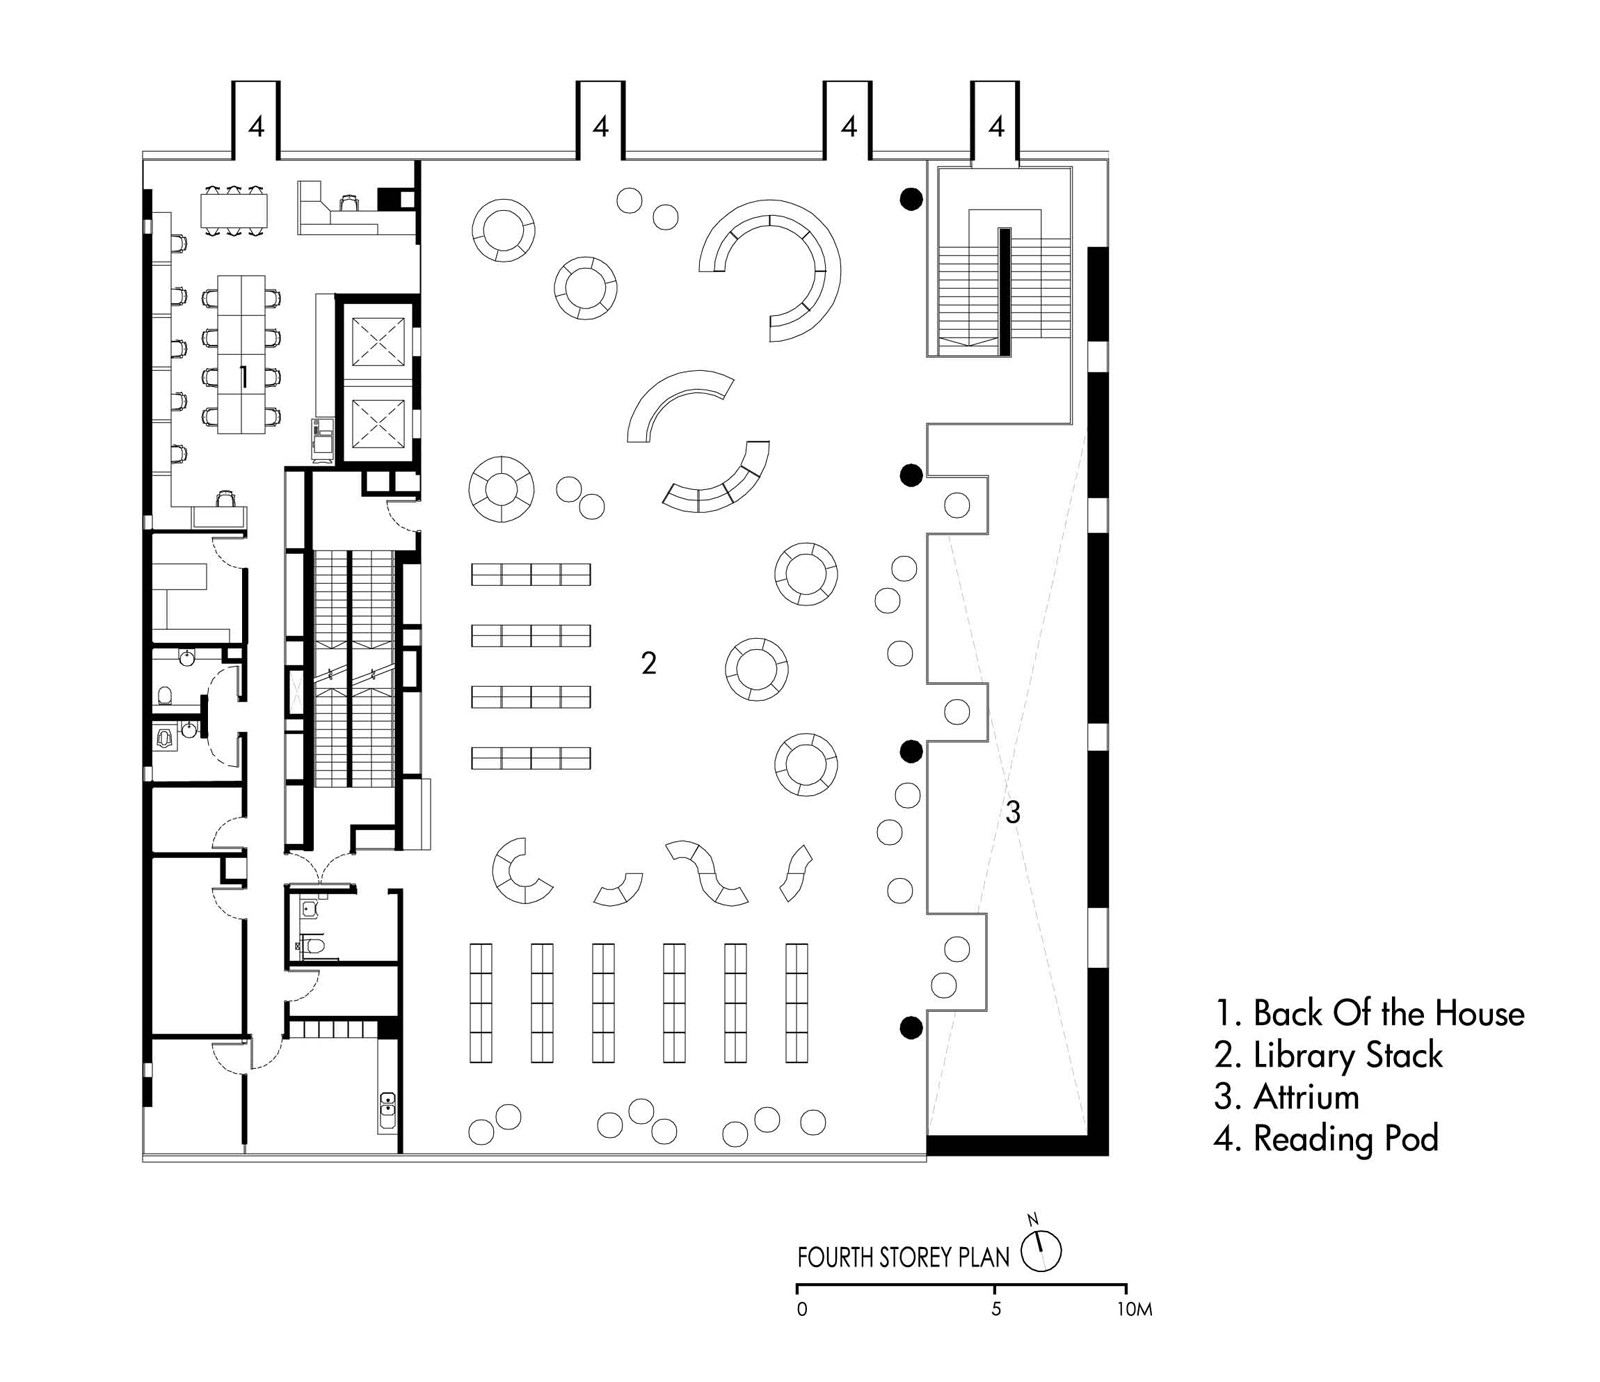 Bishan Public Library / LOOK Architects. 16 / 17. Second Floor Plan